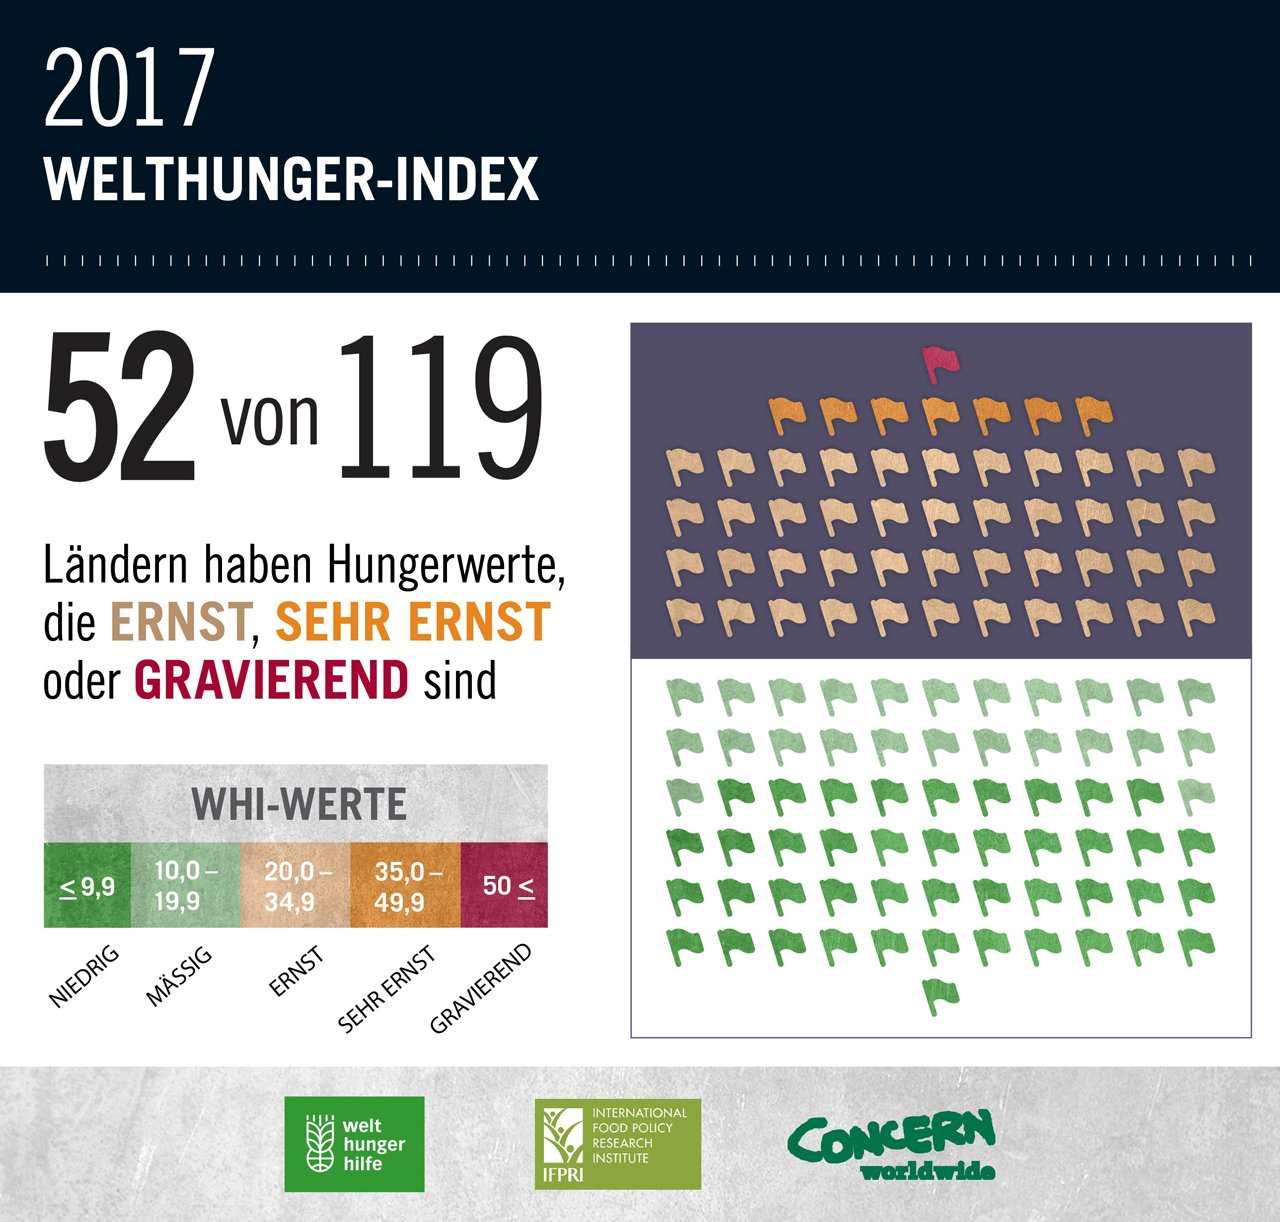 Welthunger-Index 2017